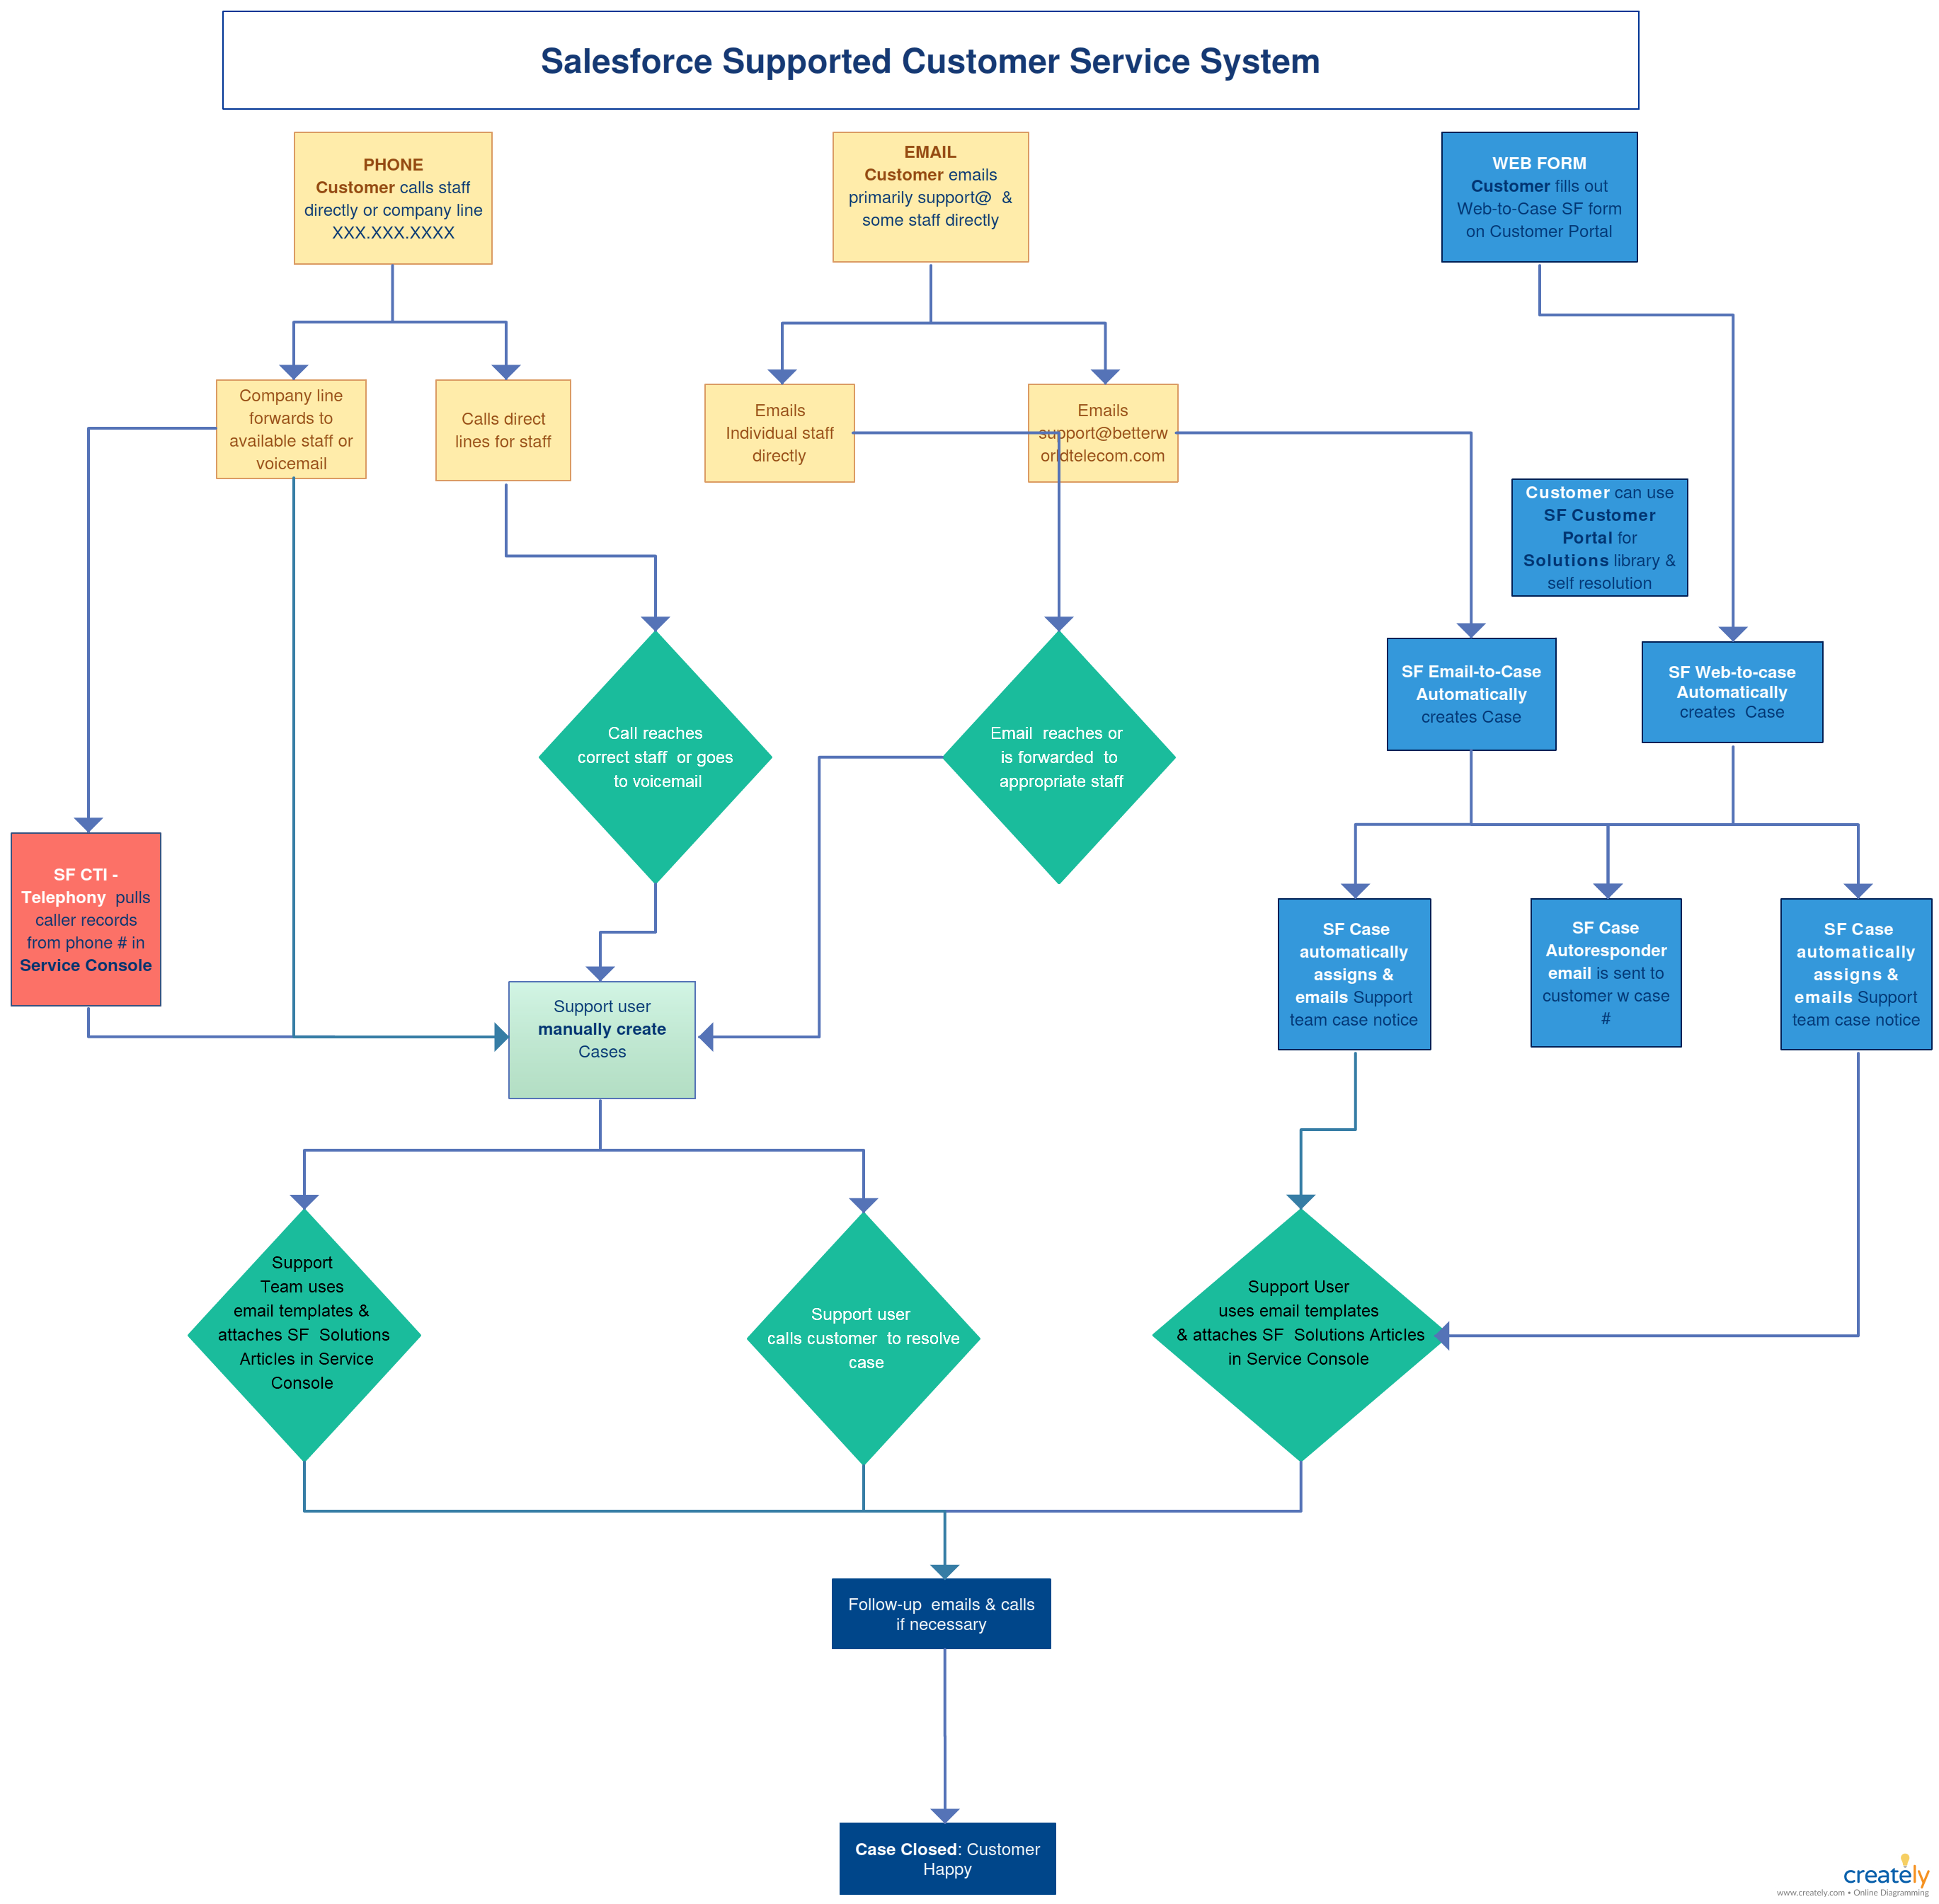 Salesforce Case Management Process Flow Salesforce Case Management Process Flow Provides Details On How To Implement Al Case Management Salesforce Flow Chart